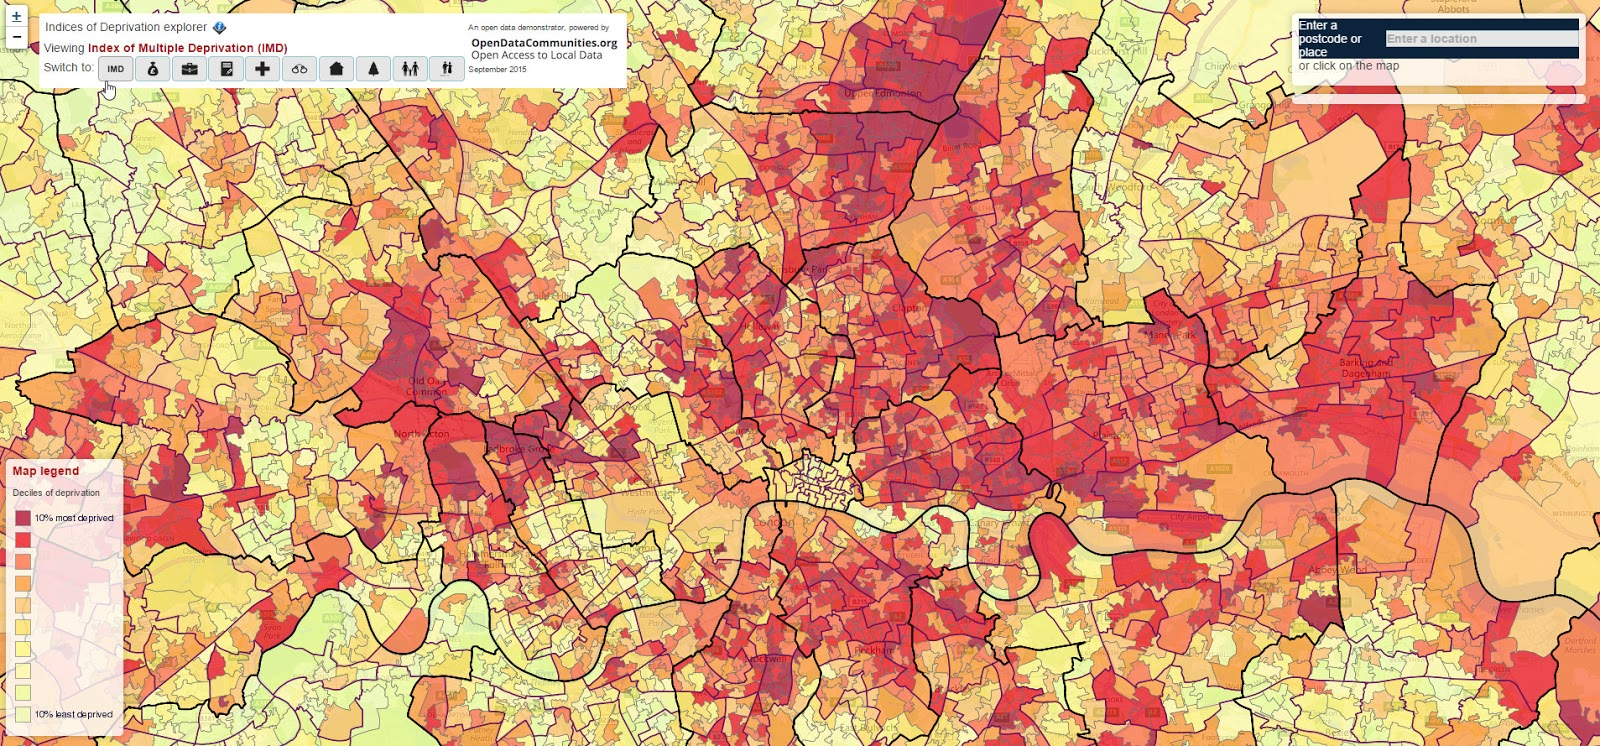 Index of multiple deprivation - London